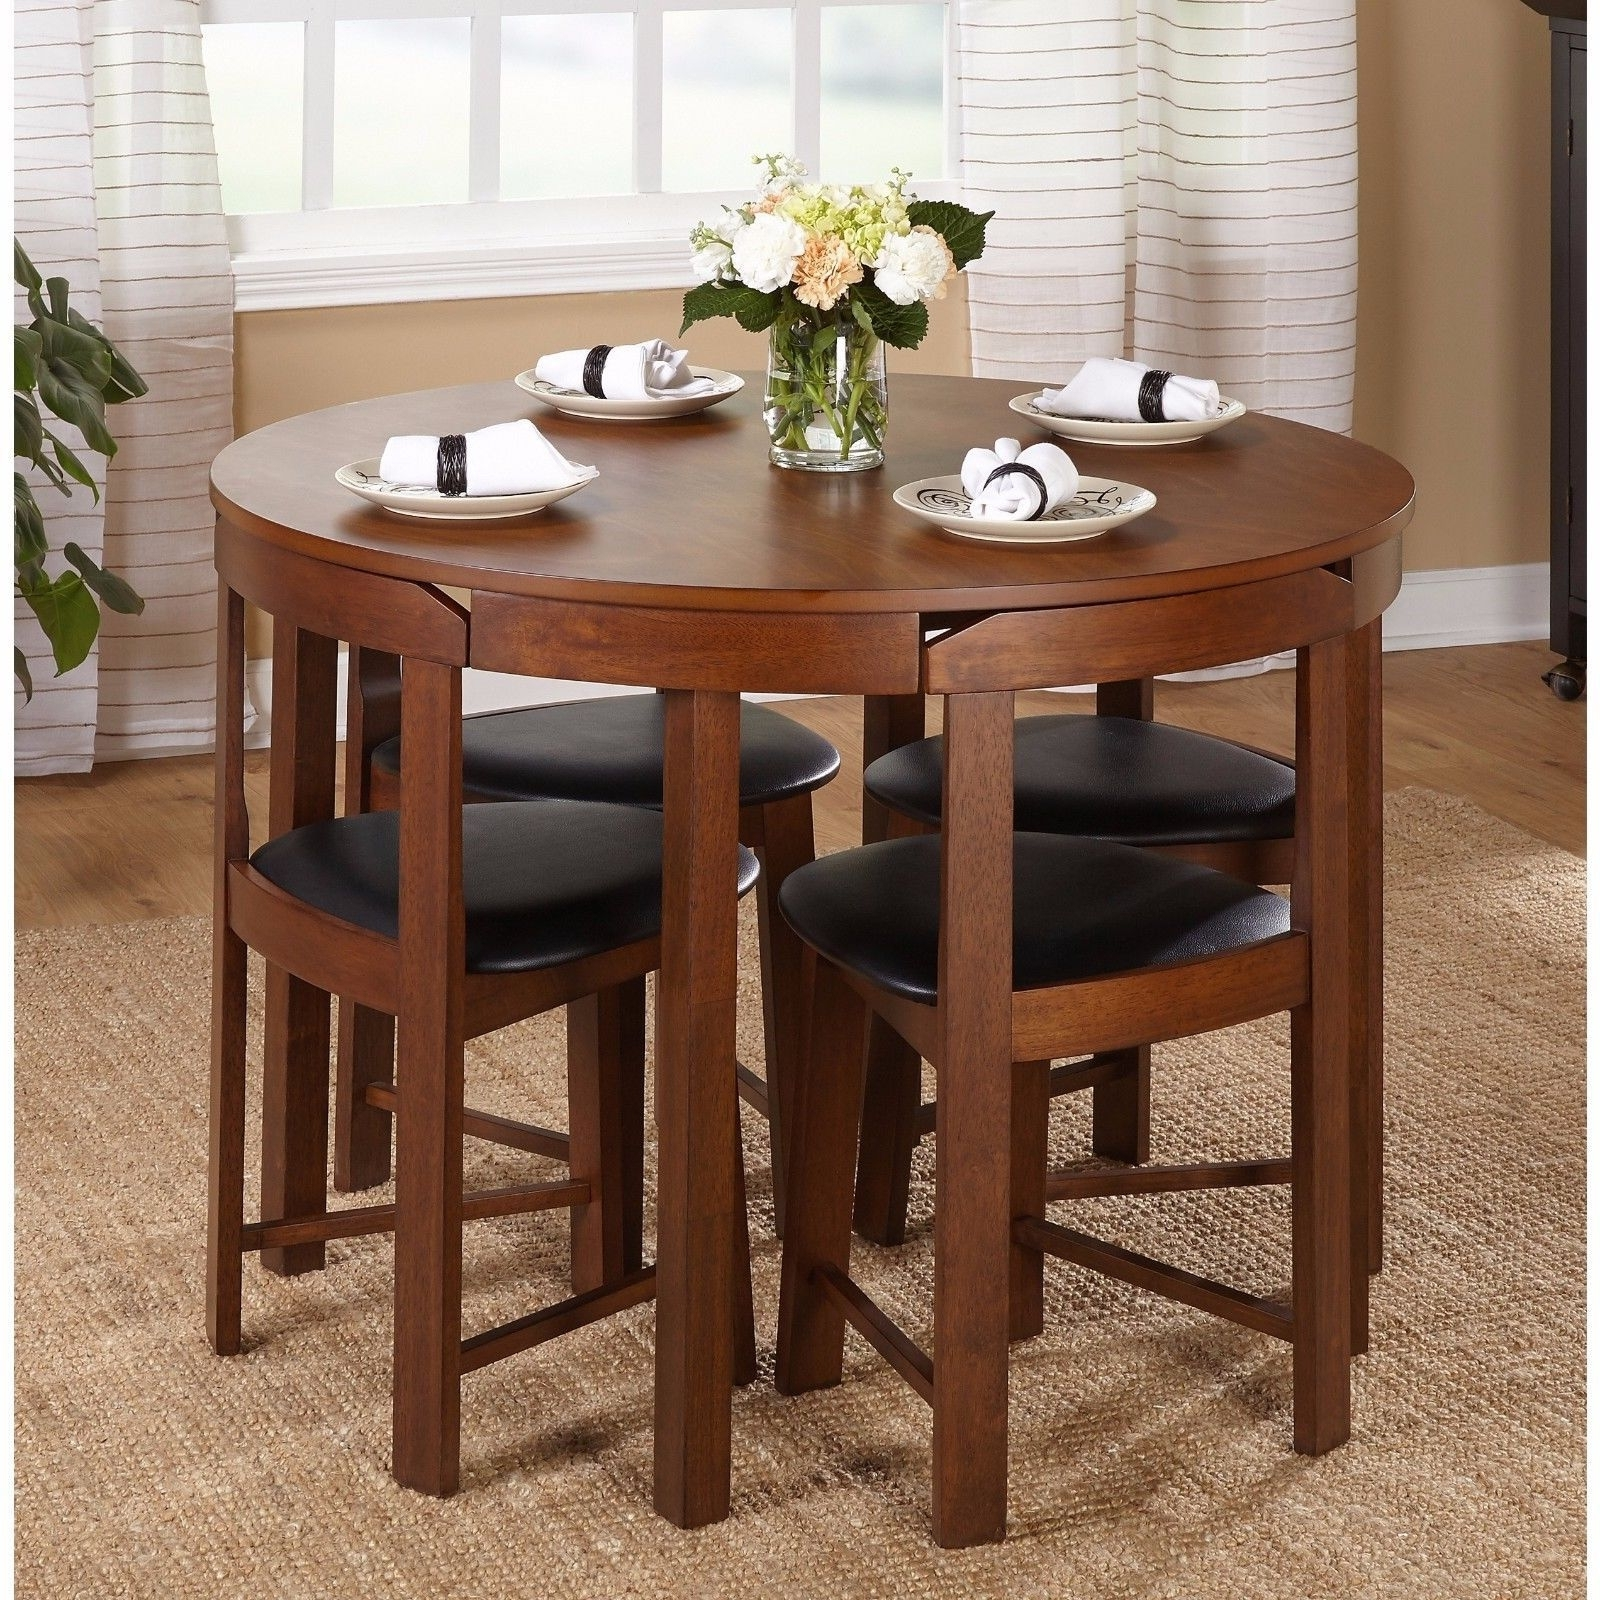 Dining Table Set For 4 Small Spaces Round Kitchen Table And Chairs For Popular Compact Dining Tables (Gallery 6 of 25)